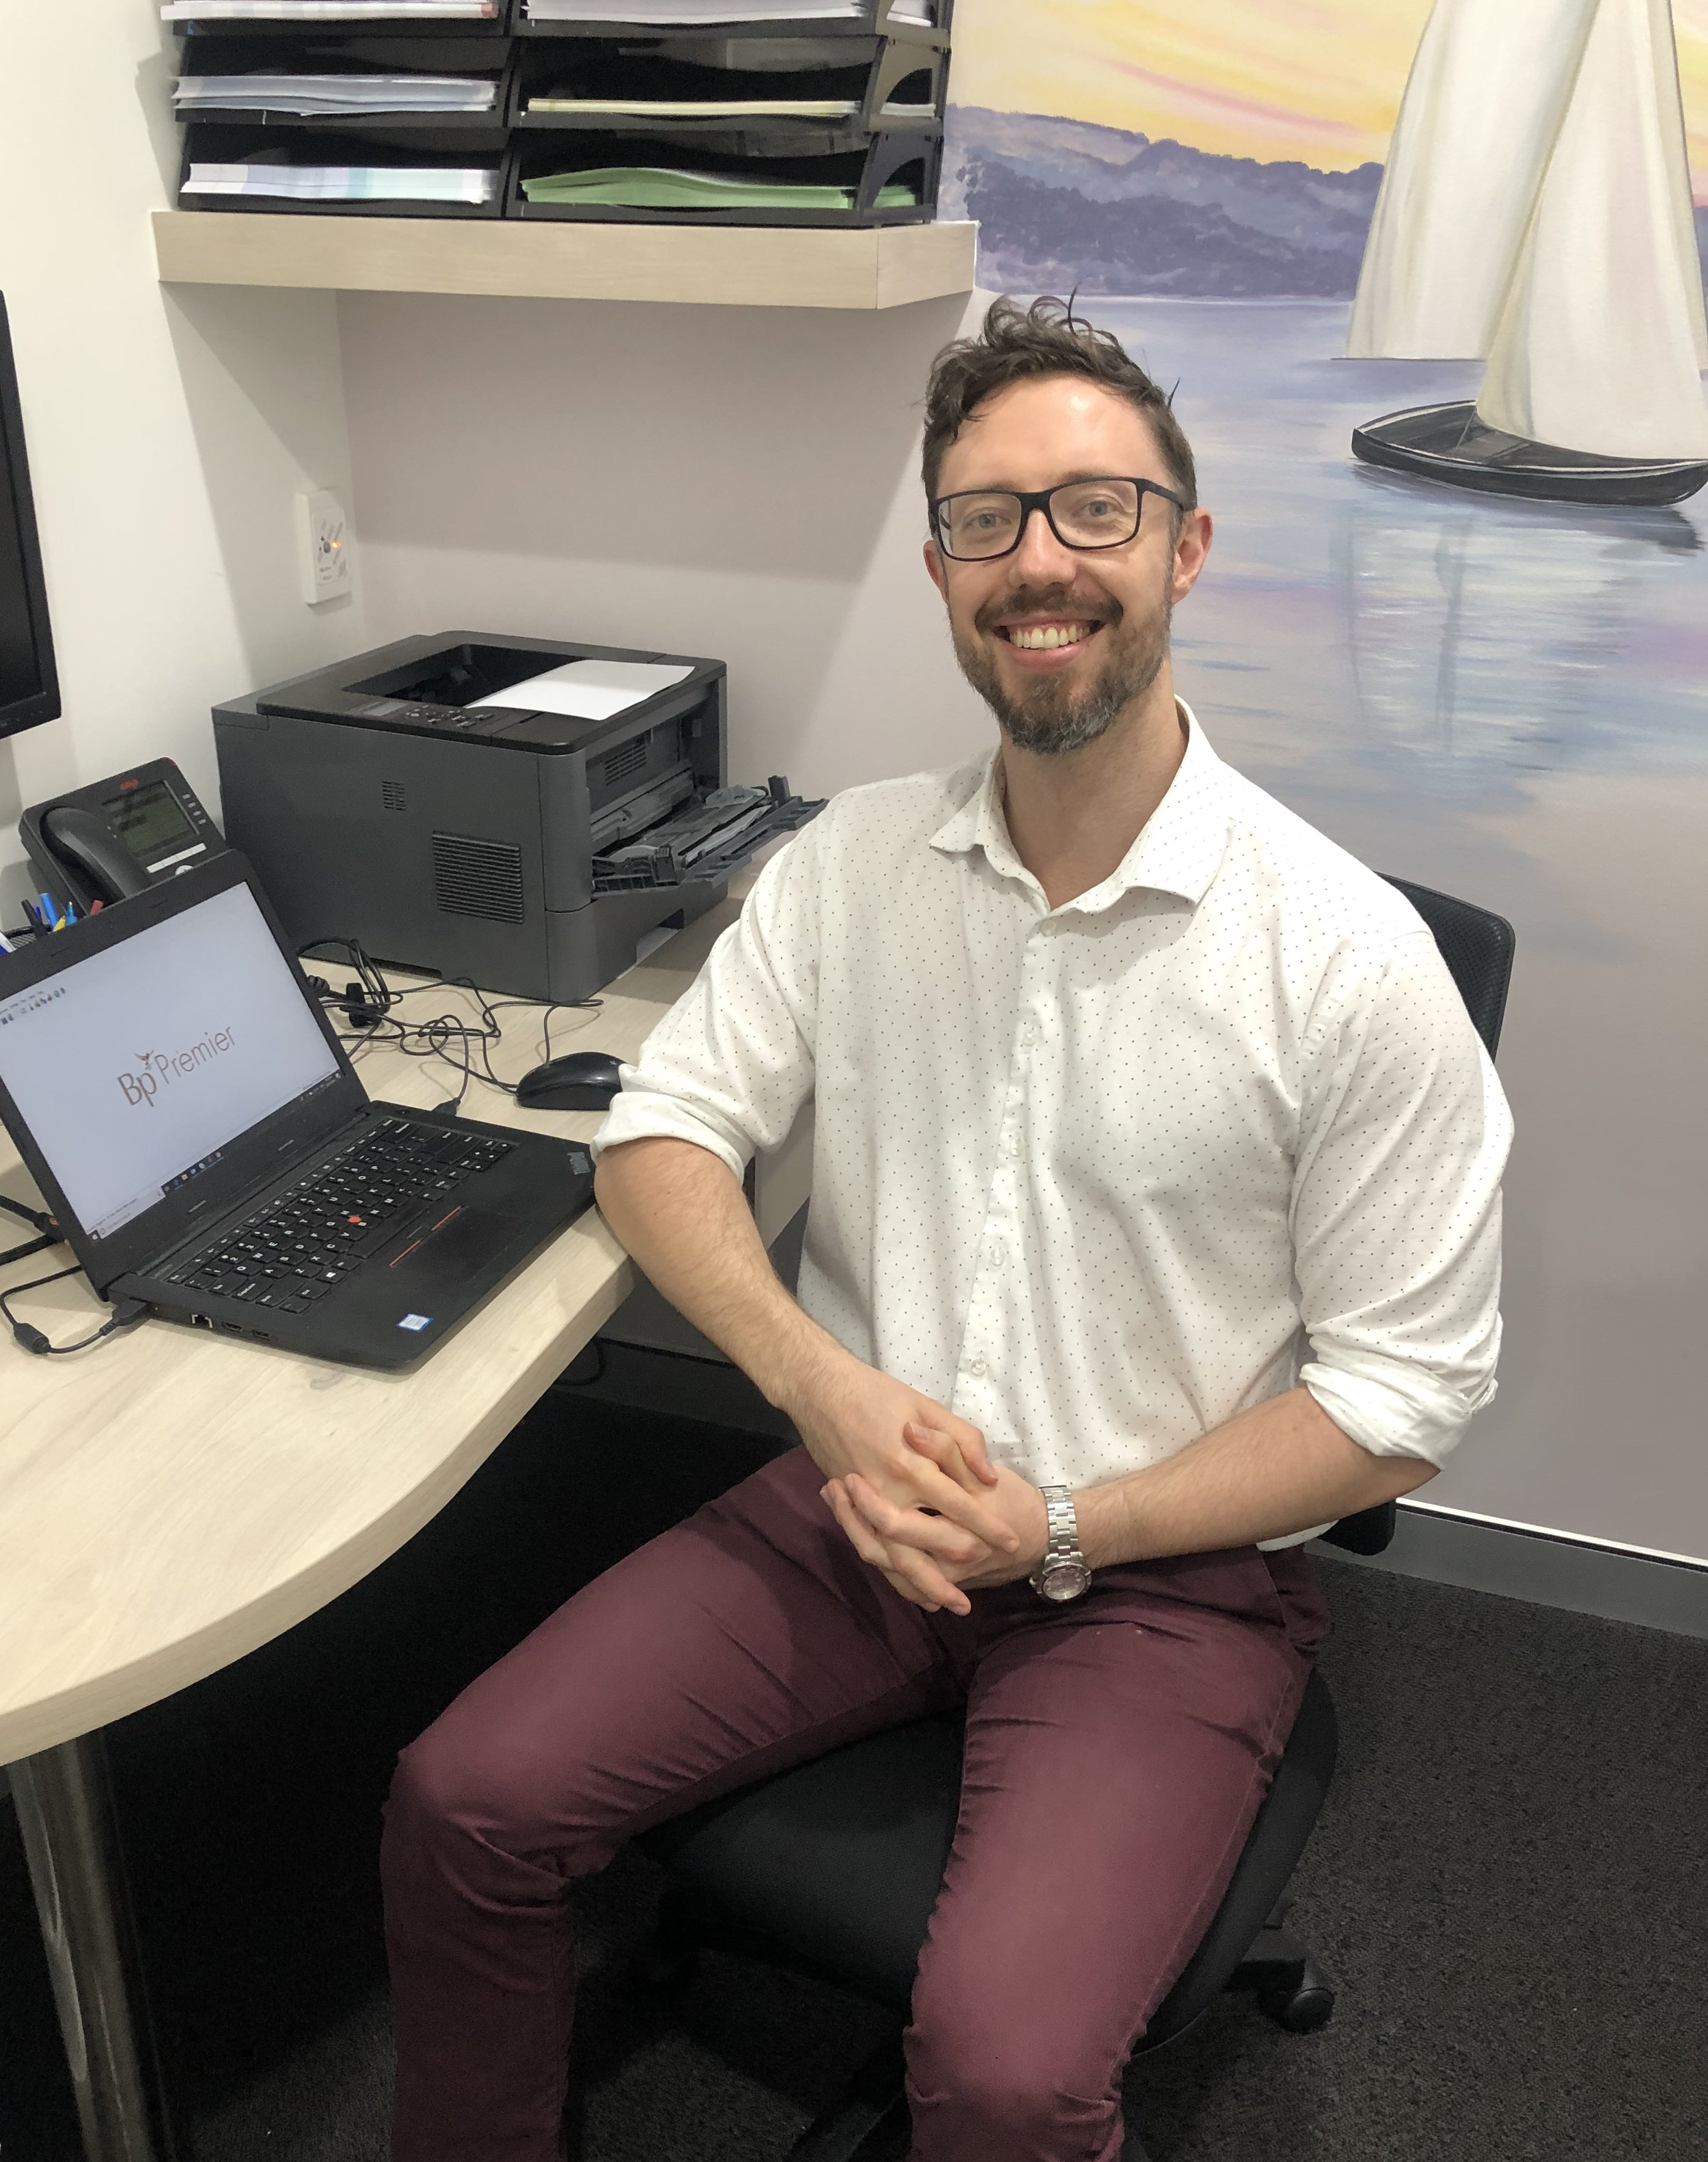 Dr Daris Vilkins - MBBS University of Queensland, Ba Med Sc Uni of Sydney, Diploma of Child Health-theory completedDr Daris studied medicine at University of Queensland, graduating in 2013. Prior to this he studied medical science at University of Sydney, graduating with honours which led to his position working as a research assistant in the Mycobacterial research lab at the Centenary institute. After his studies he returned to Western Sydney to complete his intern and residency in Blacktown, Mt Druitt and Westmead hospitals. He then was employed at Concord hospital Emergency where he still occasionally works. He spent his formative and school years in northwestern Sydney and now continues to live in the local area